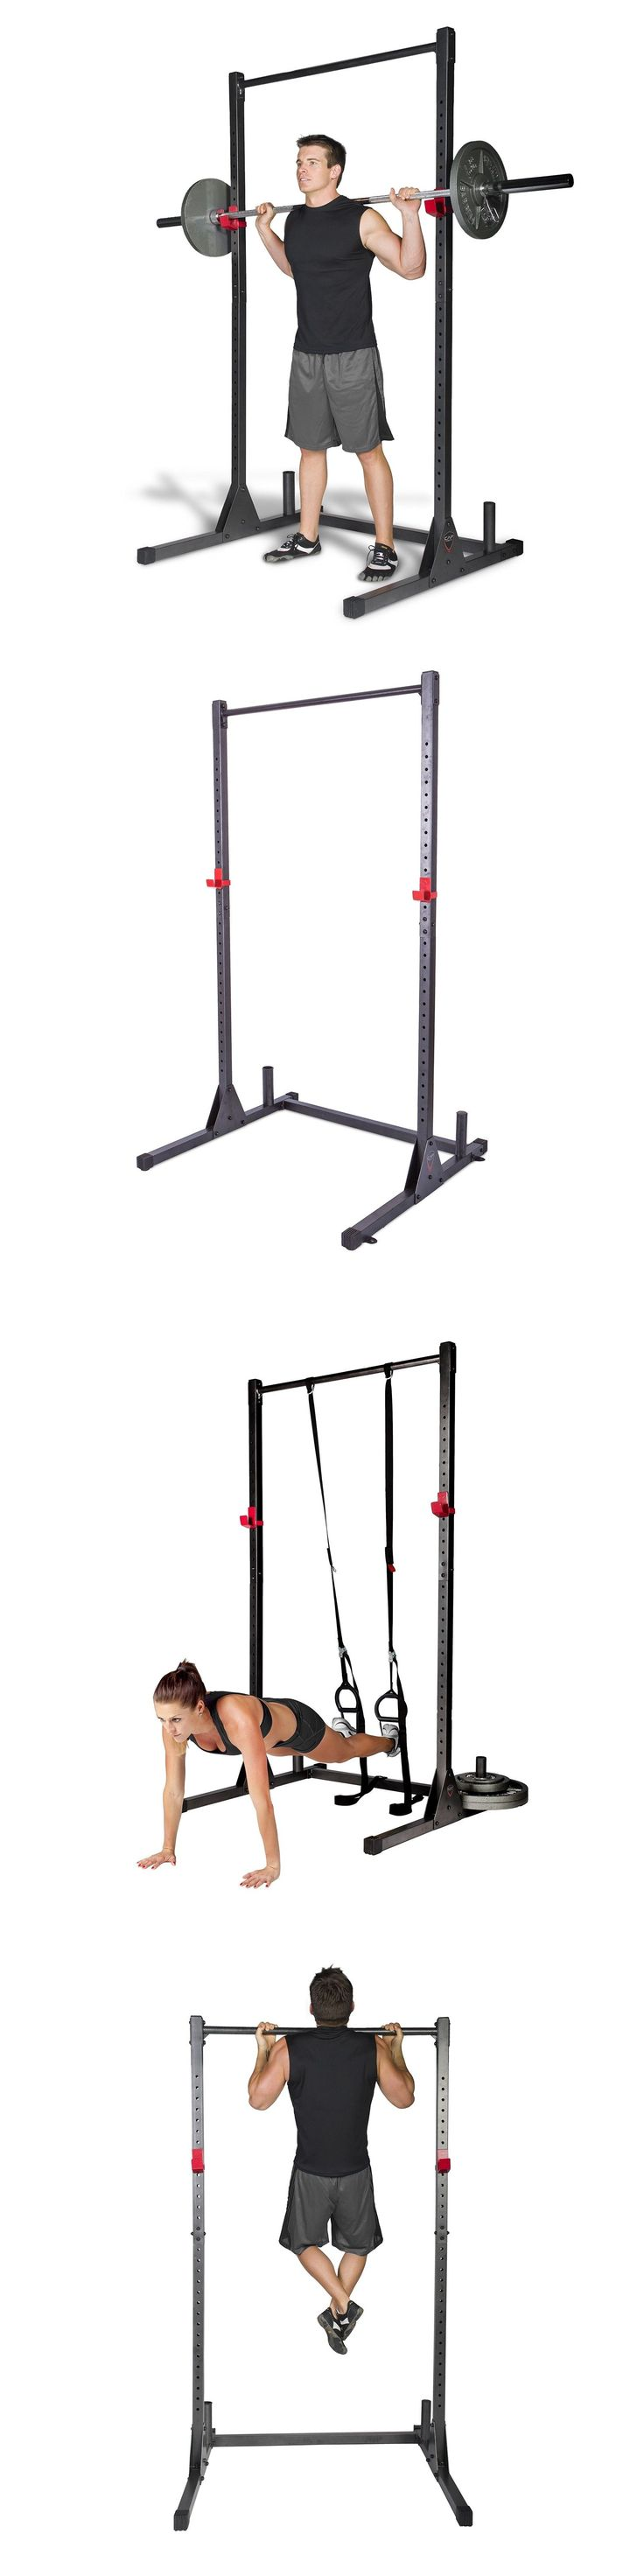 Power Racks and Smith Machines 179815: Home Gym Pull Up Bar Power Rack Exercise Stand Body Building Workout Fitness New -> BUY IT NOW ONLY: $100.75 on eBay!